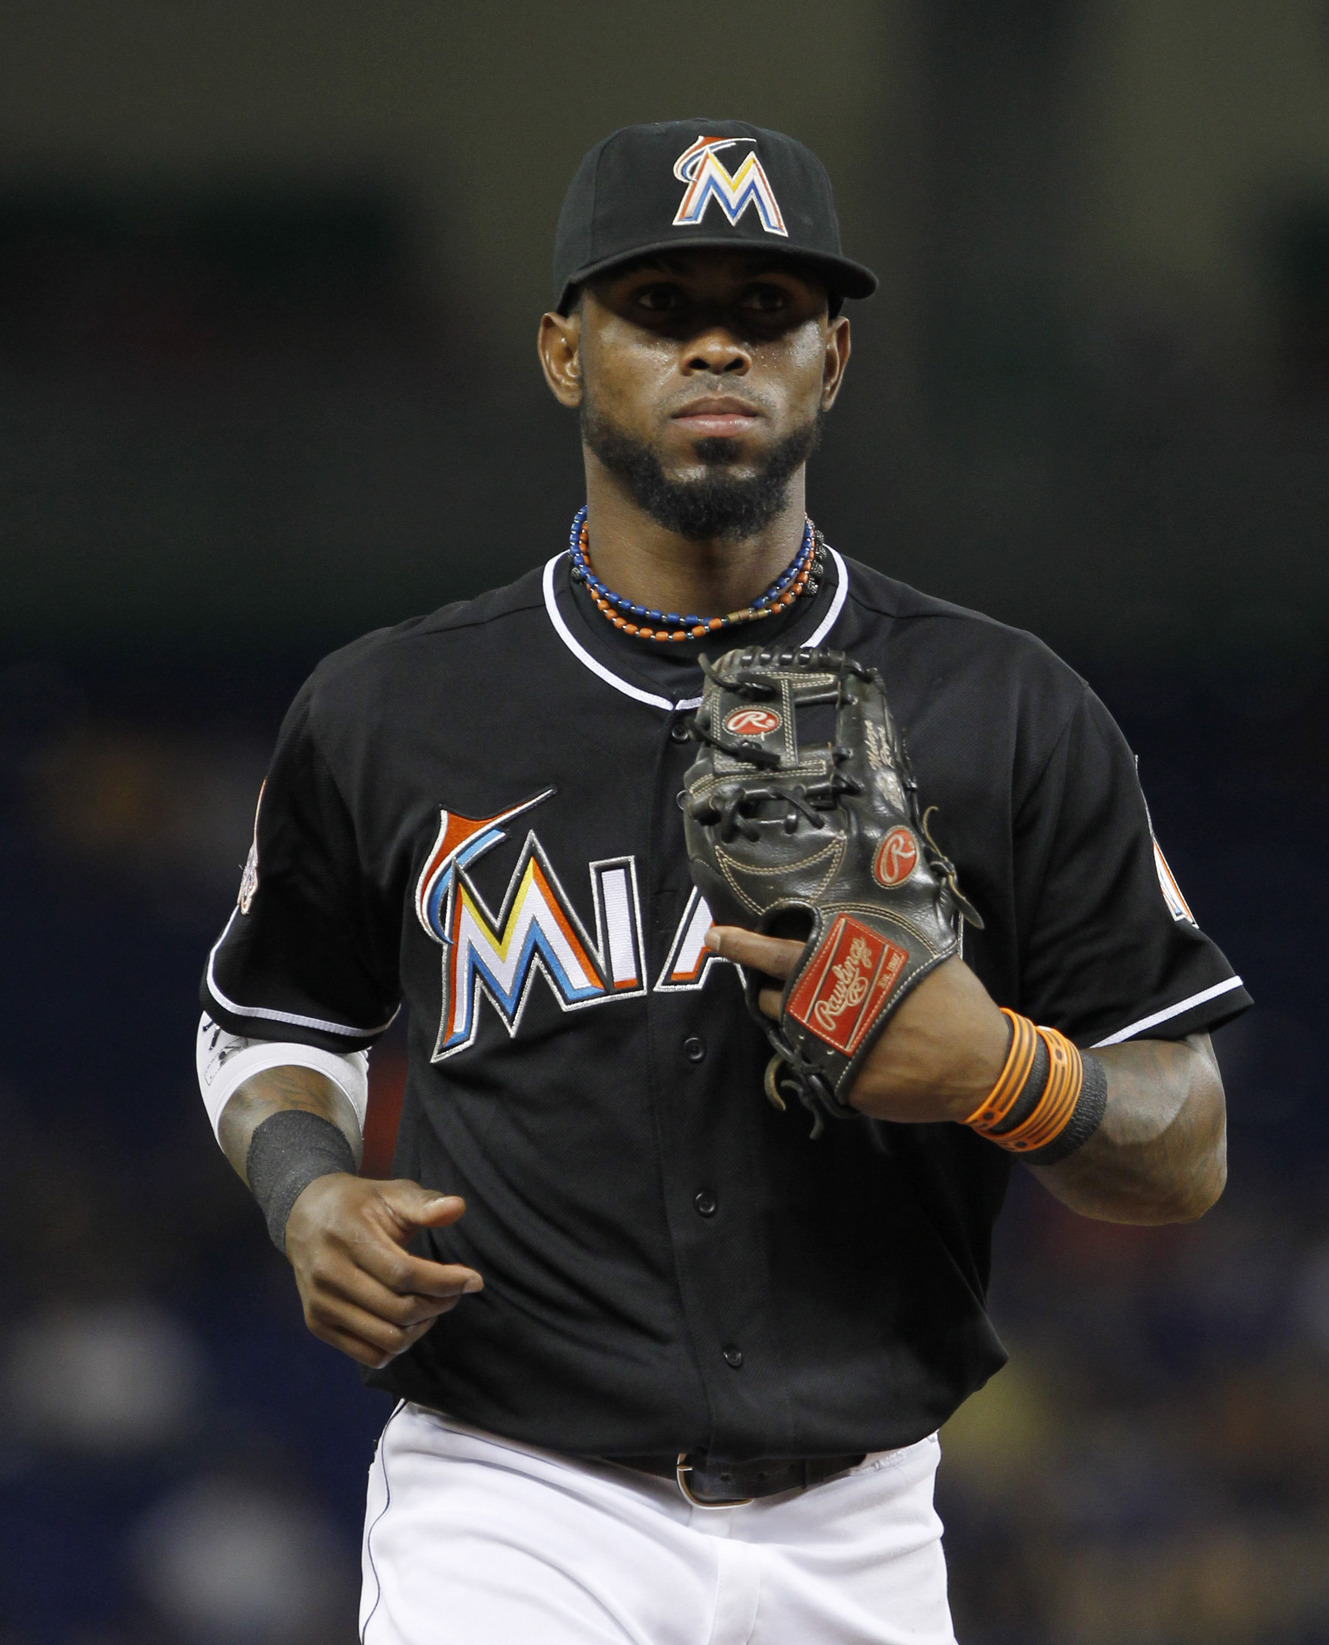 Jose Reyes should help strengthen the Jays' lineup next season. (AP)